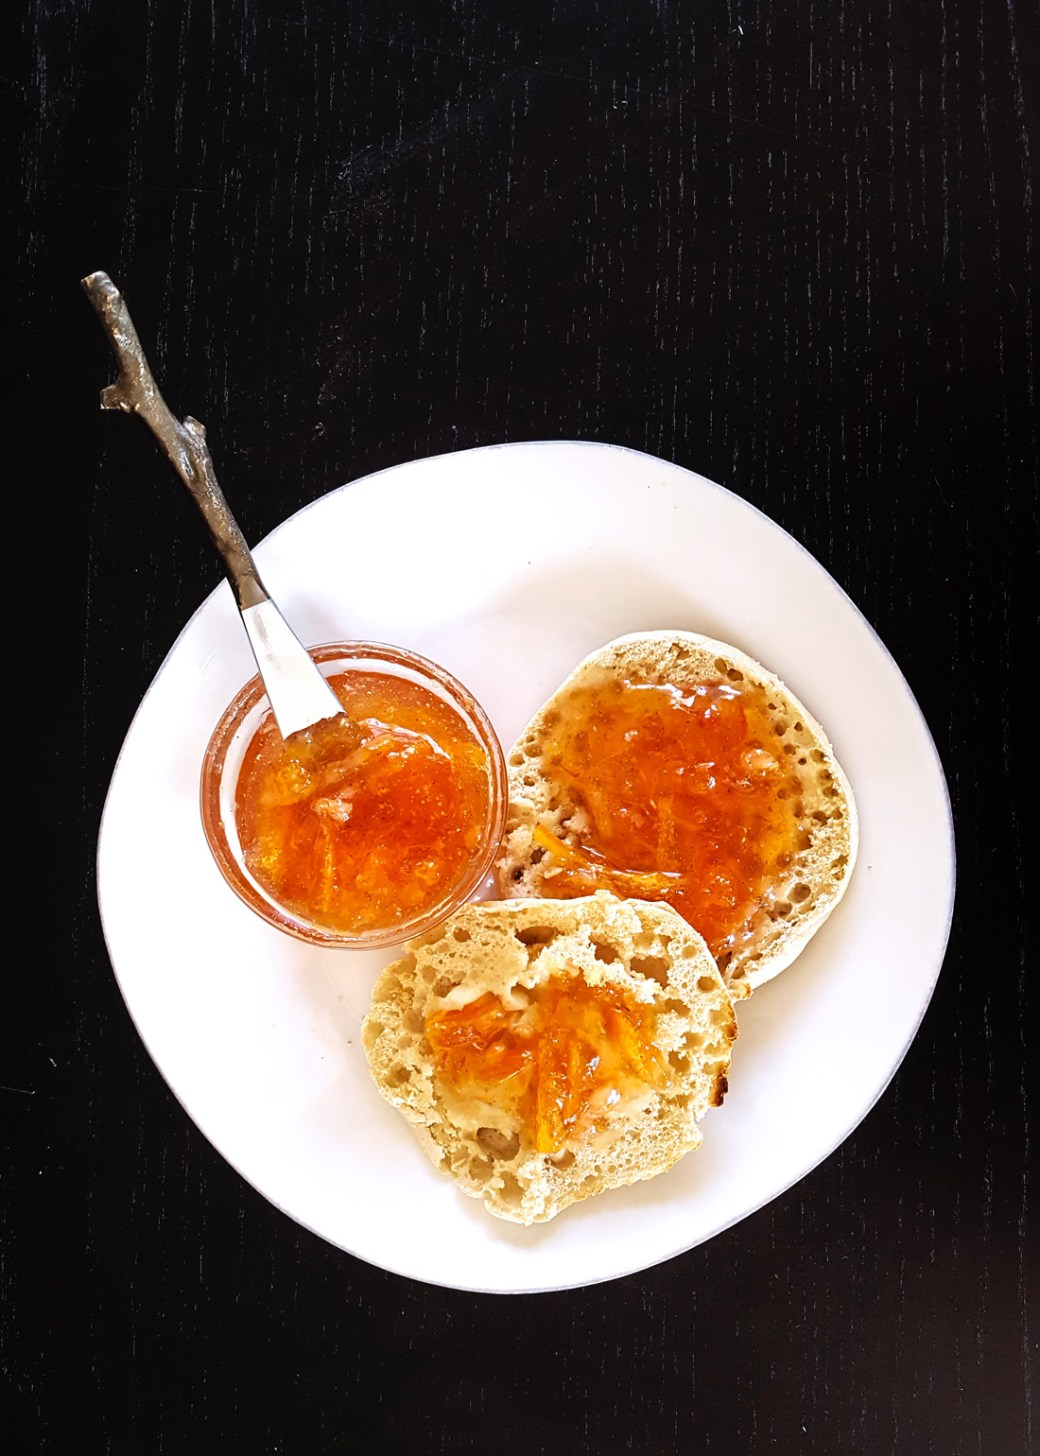 Winter citrus is my favorite way to brighten the gloom of the season. Make this sweet, colorful, and highly adaptable Three Citrus Vanilla Marmalade any time you need a little pick-me-up or a lovely gift for family and friends!   FeastInThyme.com